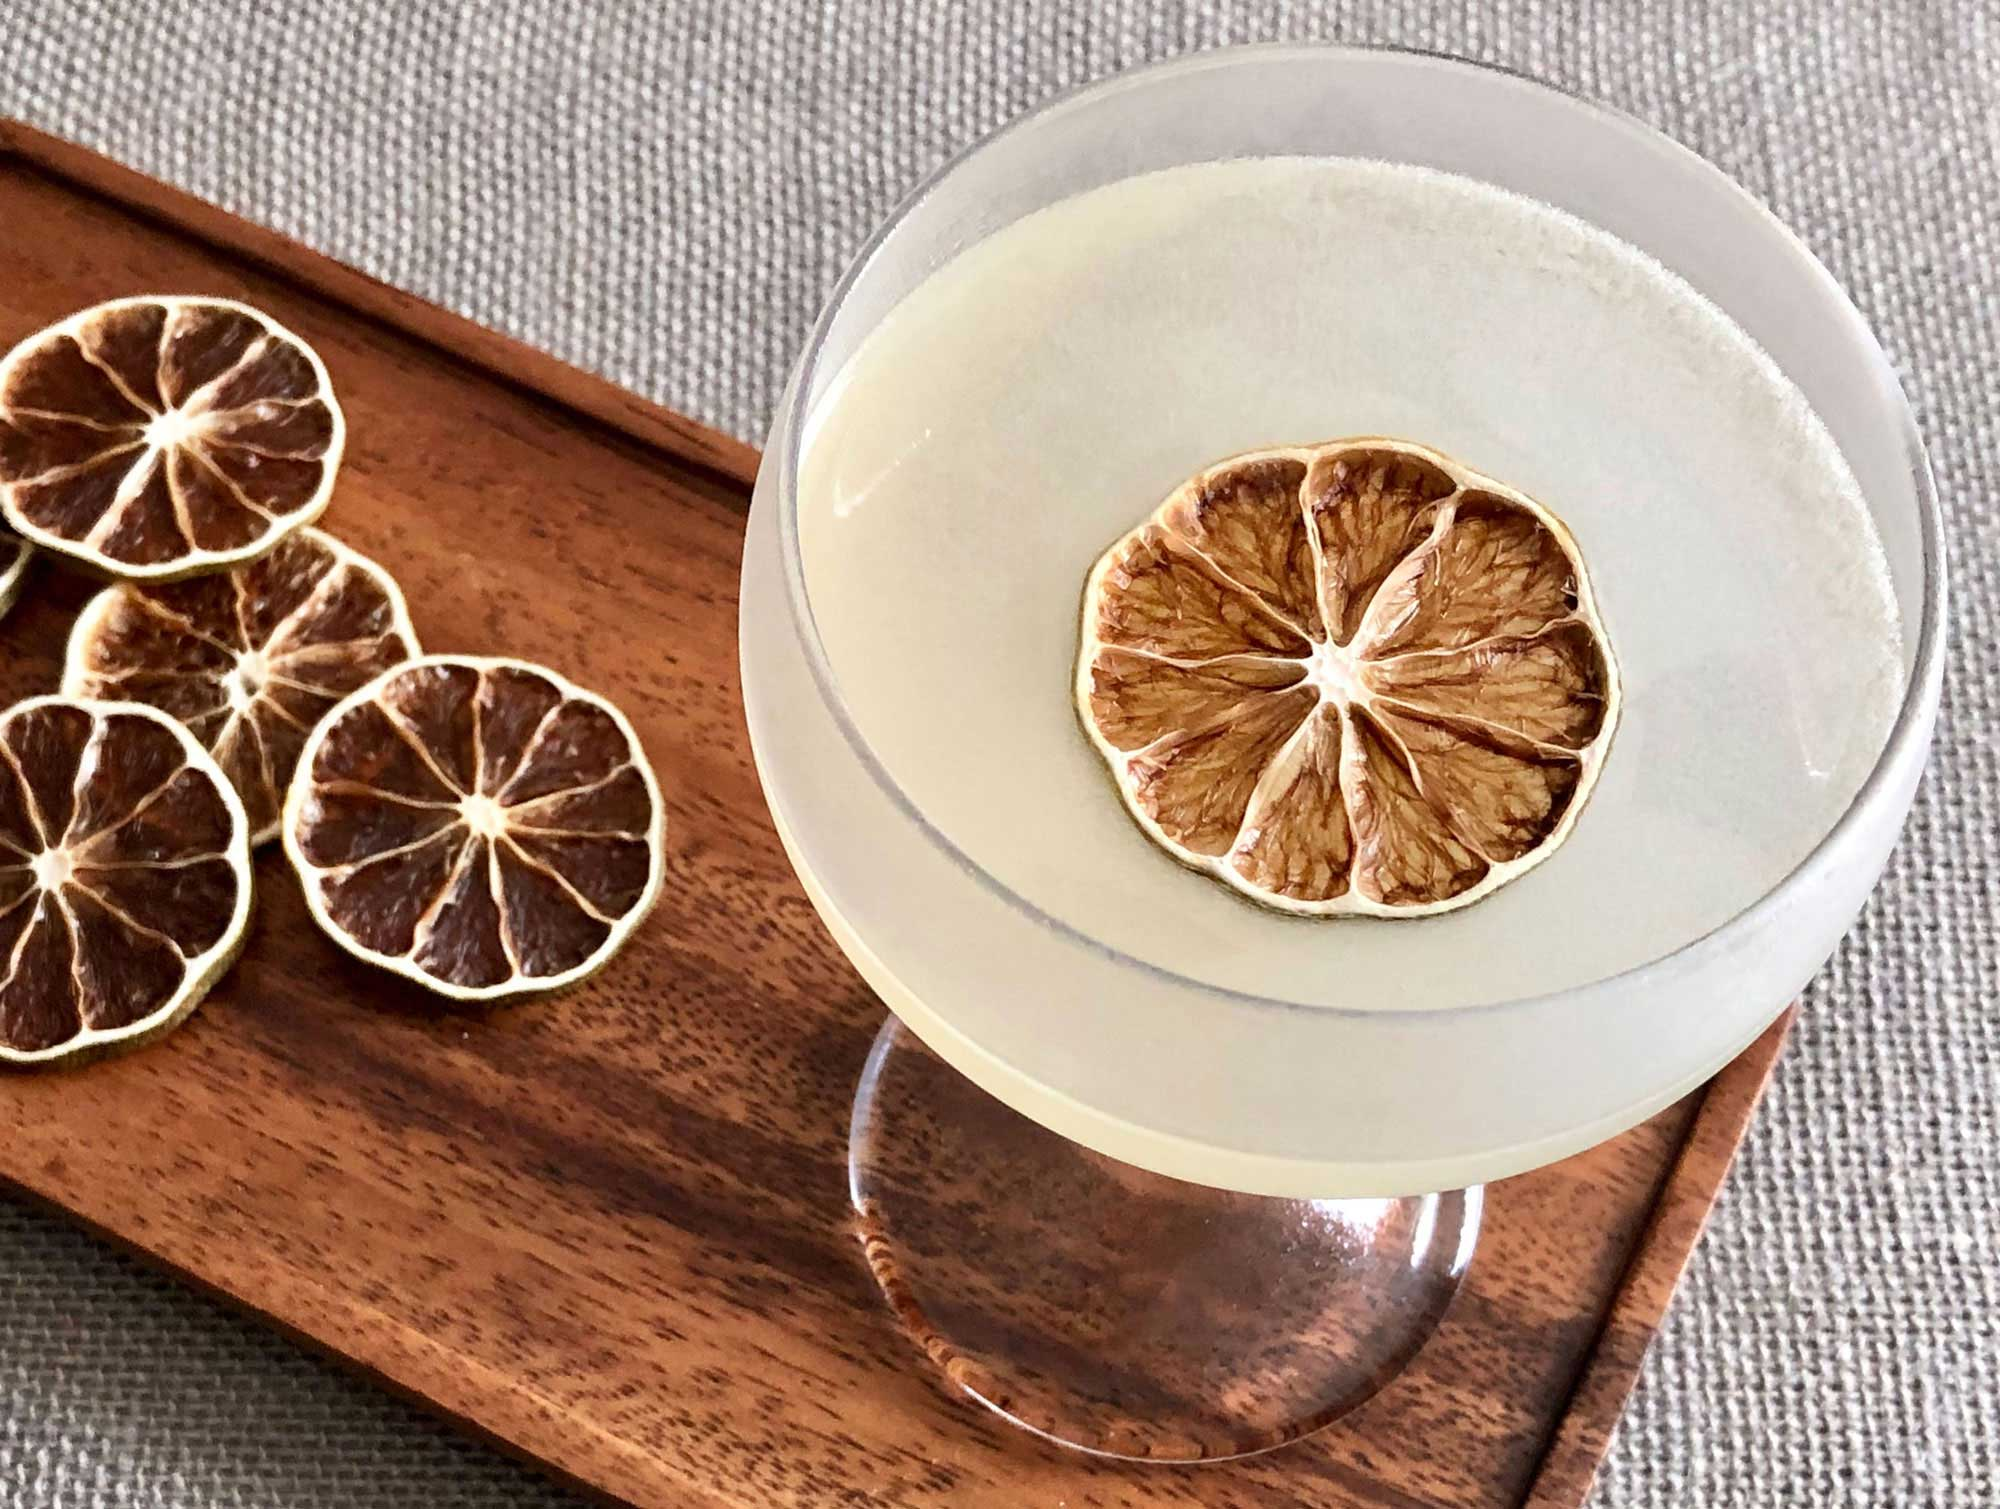 An example of the Last Run, the mixed drink (cocktail) featuring Dolin Génépy le Chamois Liqueur, Hayman's London Dry Gin, maraschino liqueur, and lime juice; photo by Lee Edwards